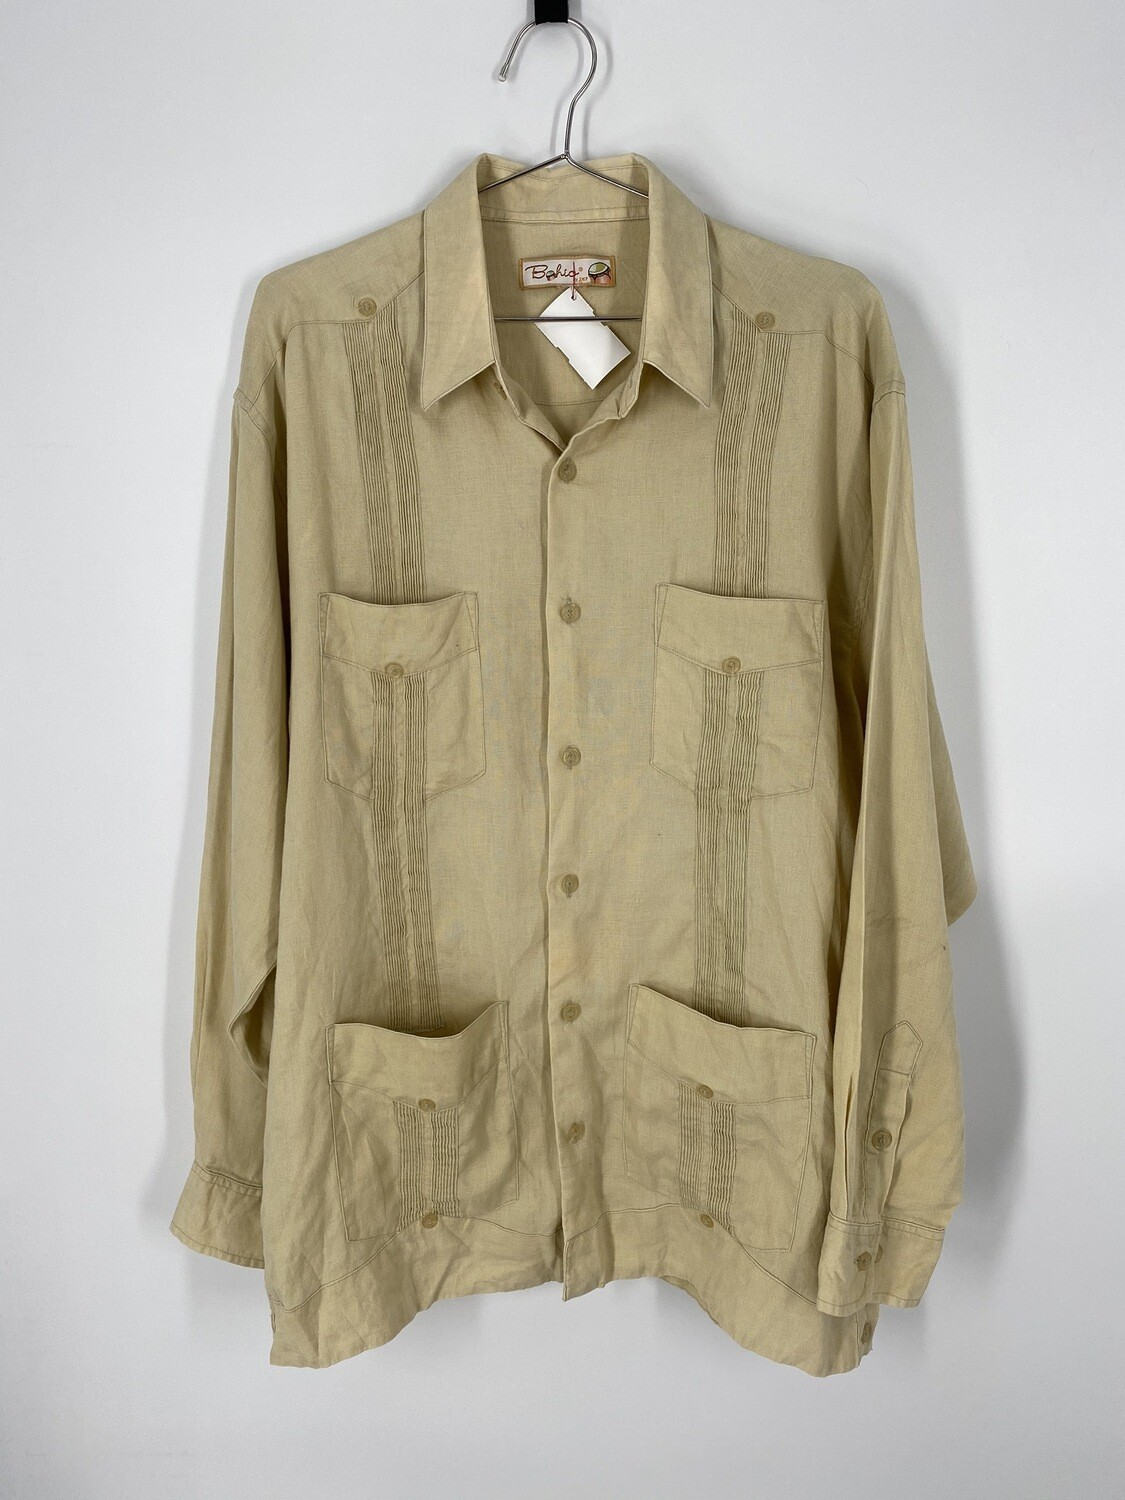 Bohio Beige Linen Button Up Size L